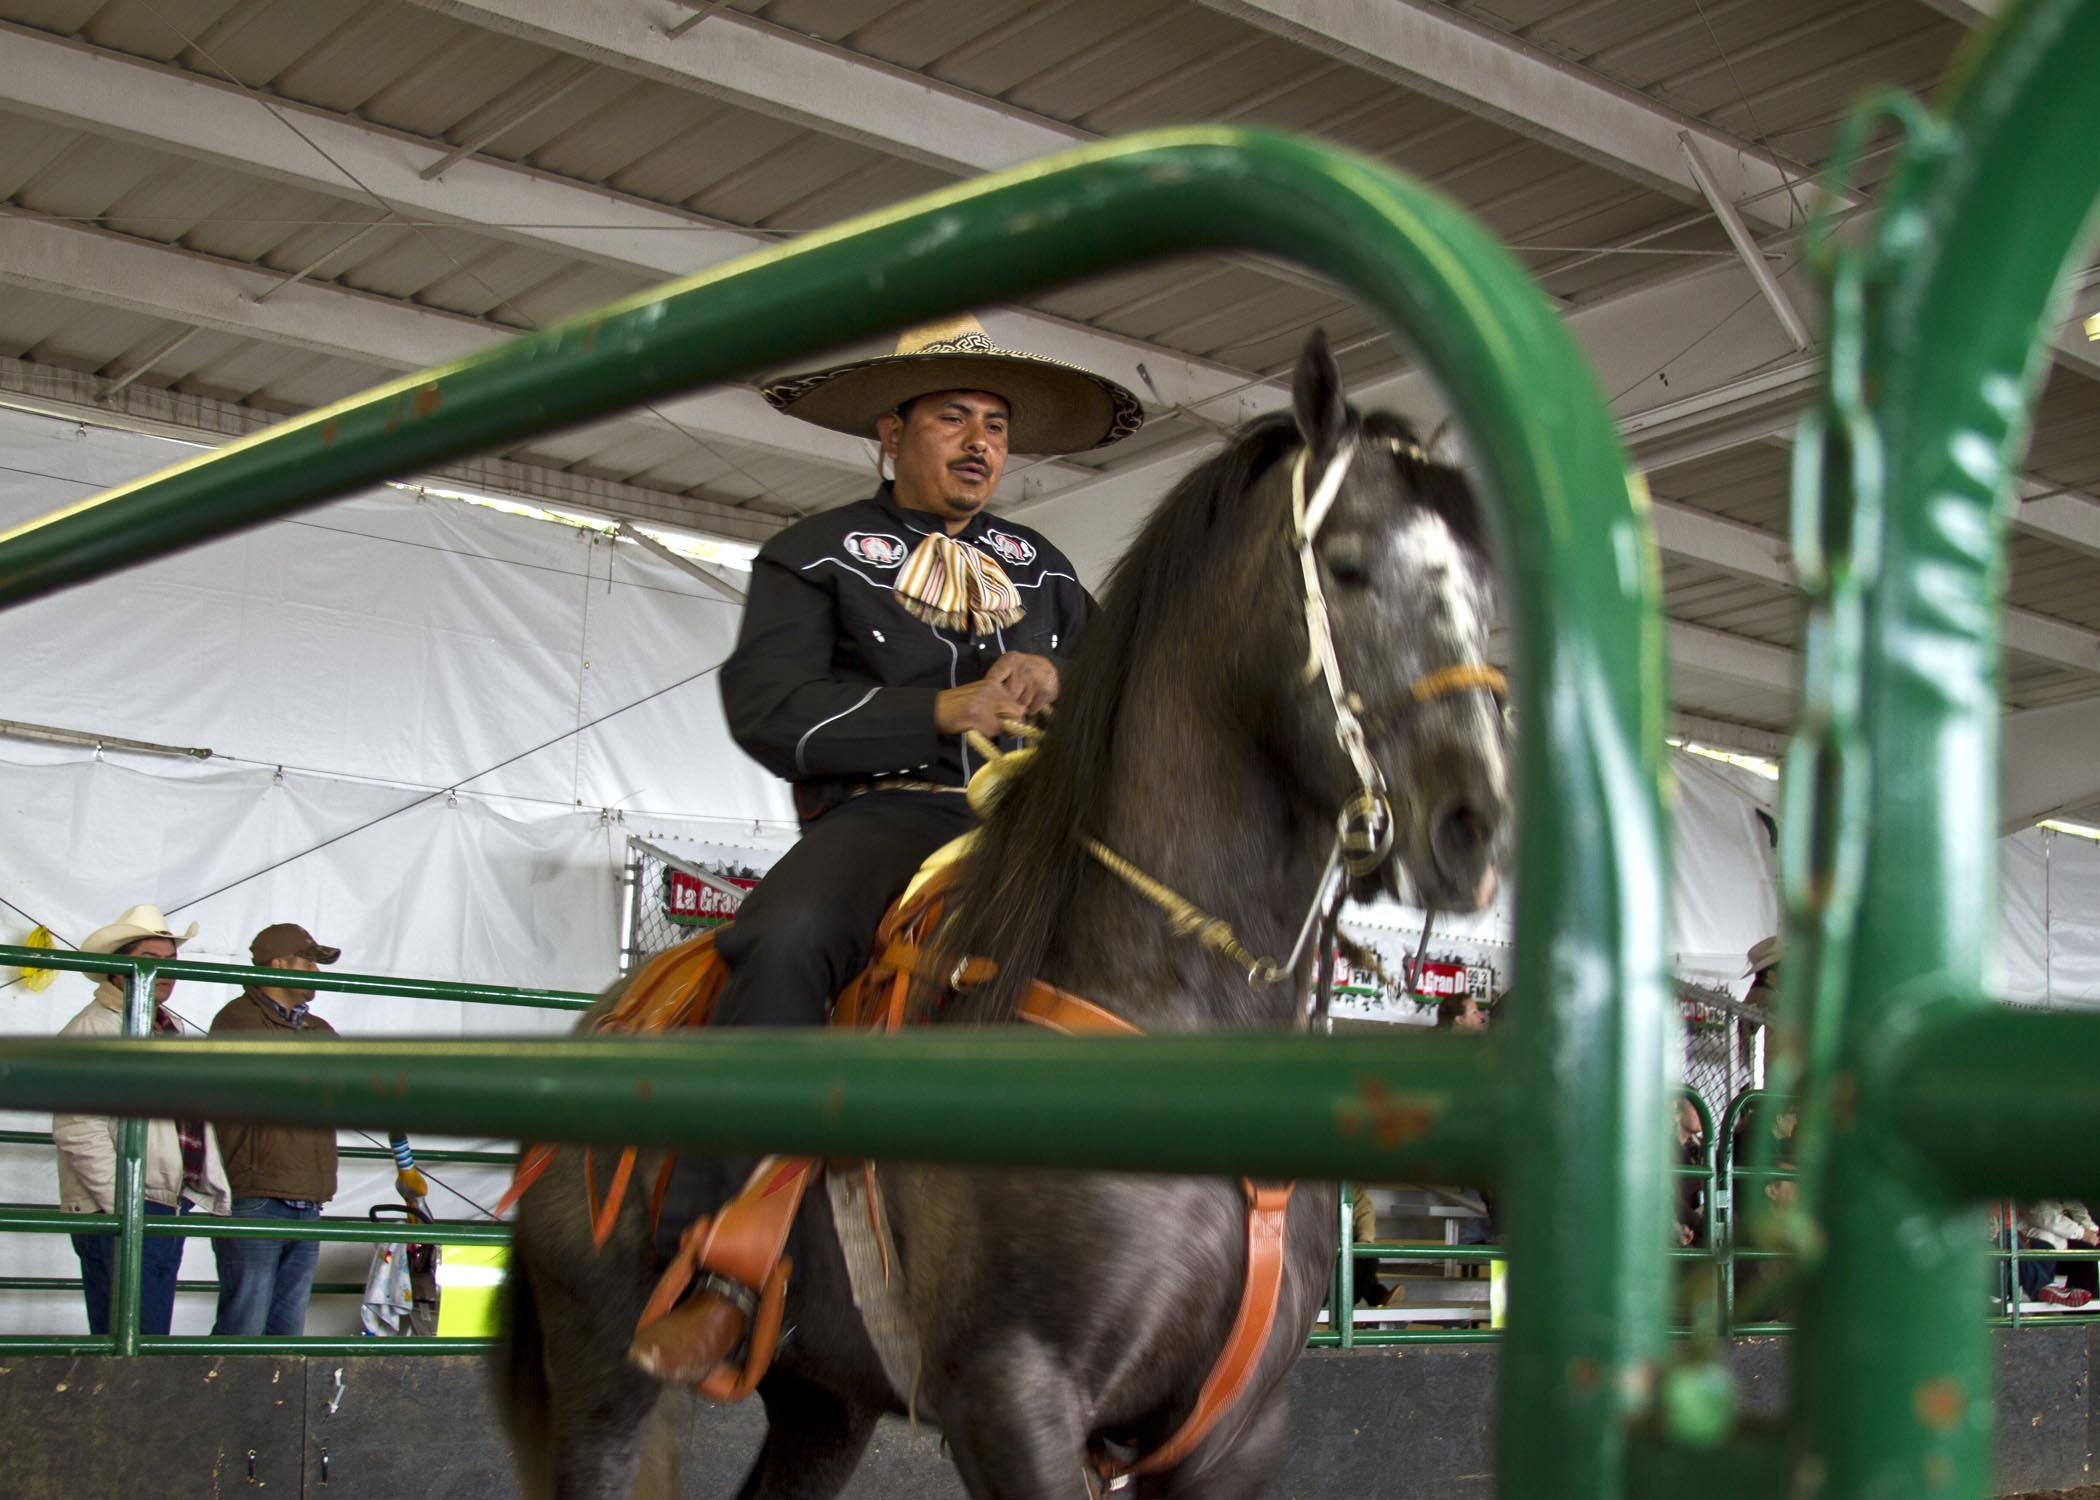 A rider completes his introductory lap prior to a trick riding show at the 2013 Puyallup Spring Fair.